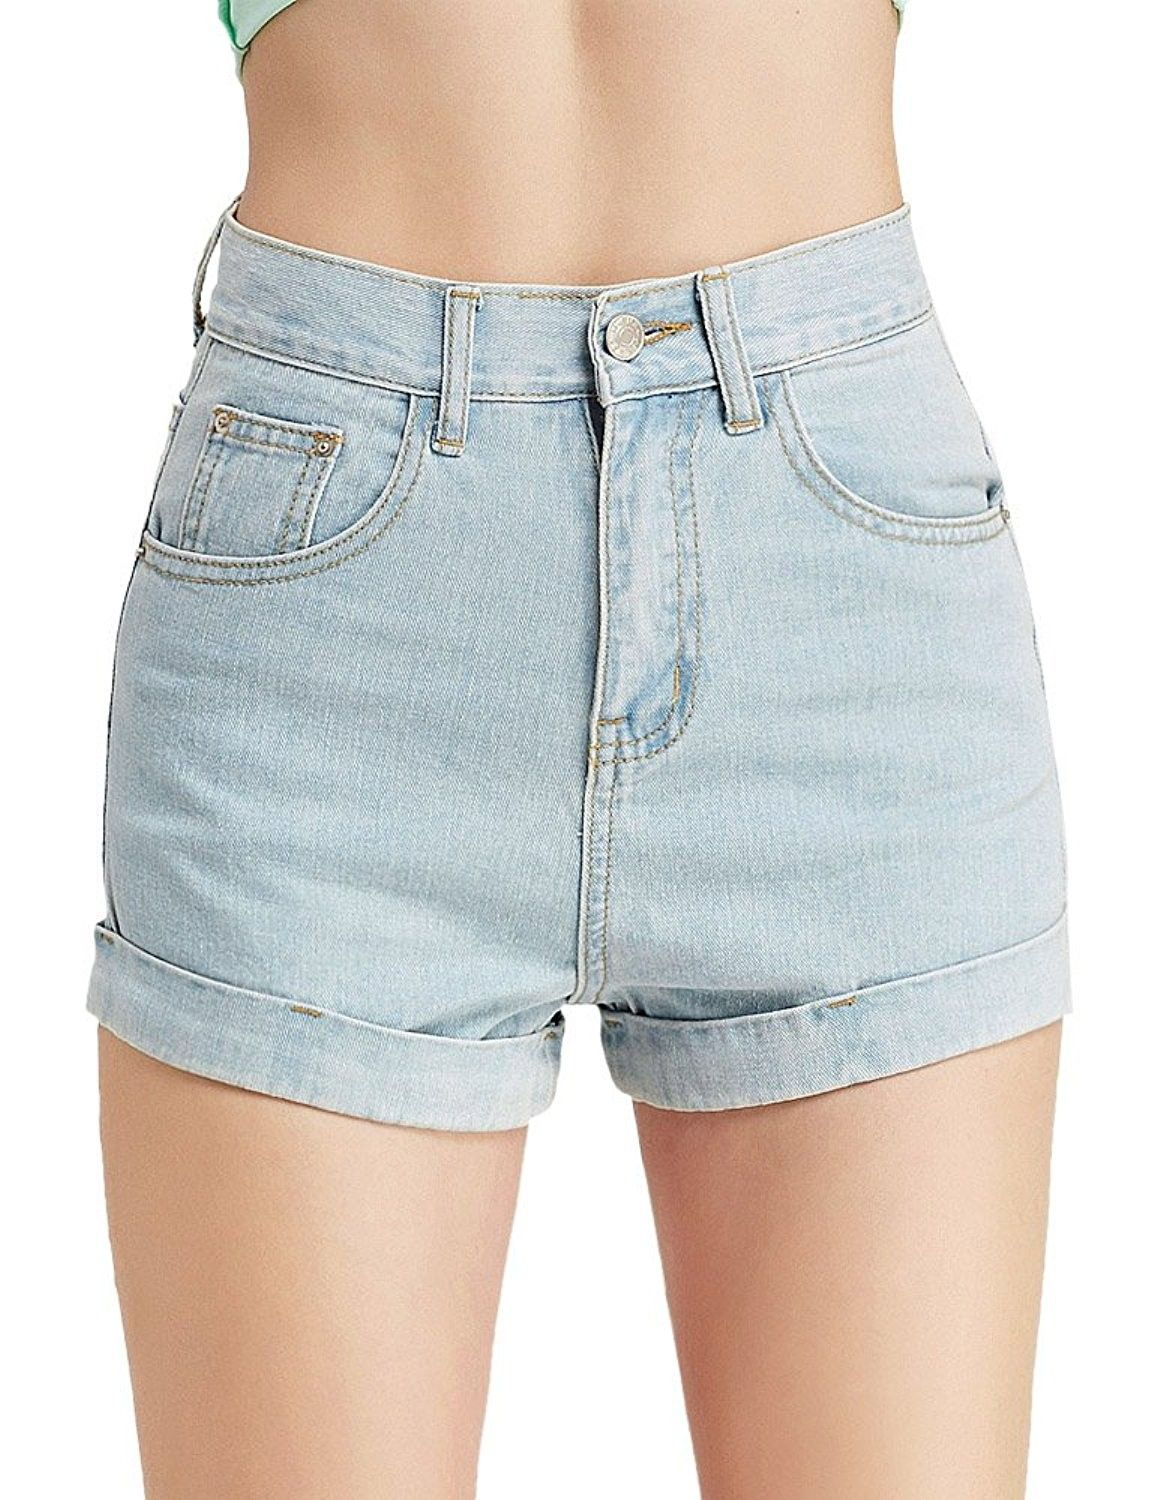 7c88208ddd2779 High Waist Shorts Summer Sexy Distressed Folded Hem Denim Booty Jeans Shorts  For Women - 01 Light Blue - CQ18C3IU2WL,Women's Clothing, Shorts #women ...